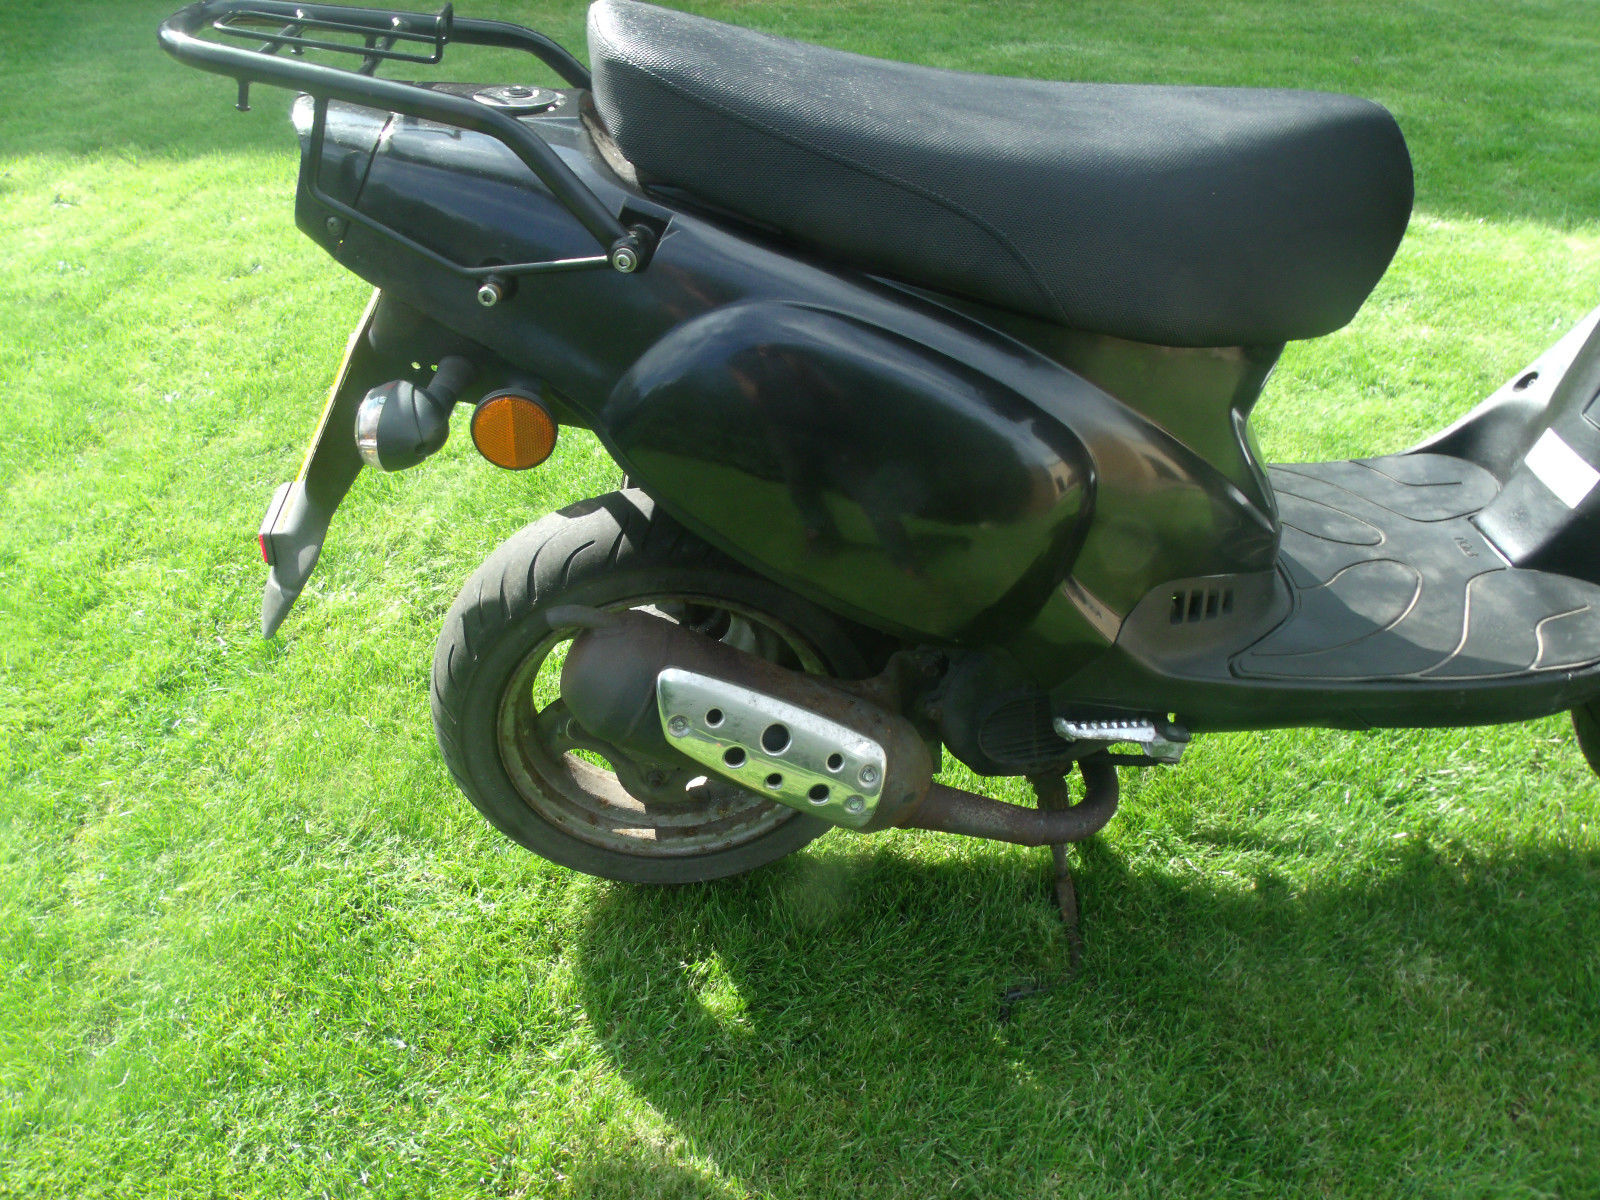 Pierspeed Tgb Scooter Cdi Wiring Diagramtgb Wire Diagrams Schematics 2005 Laser Image 7 50cc Moped Low Miles Good Runner